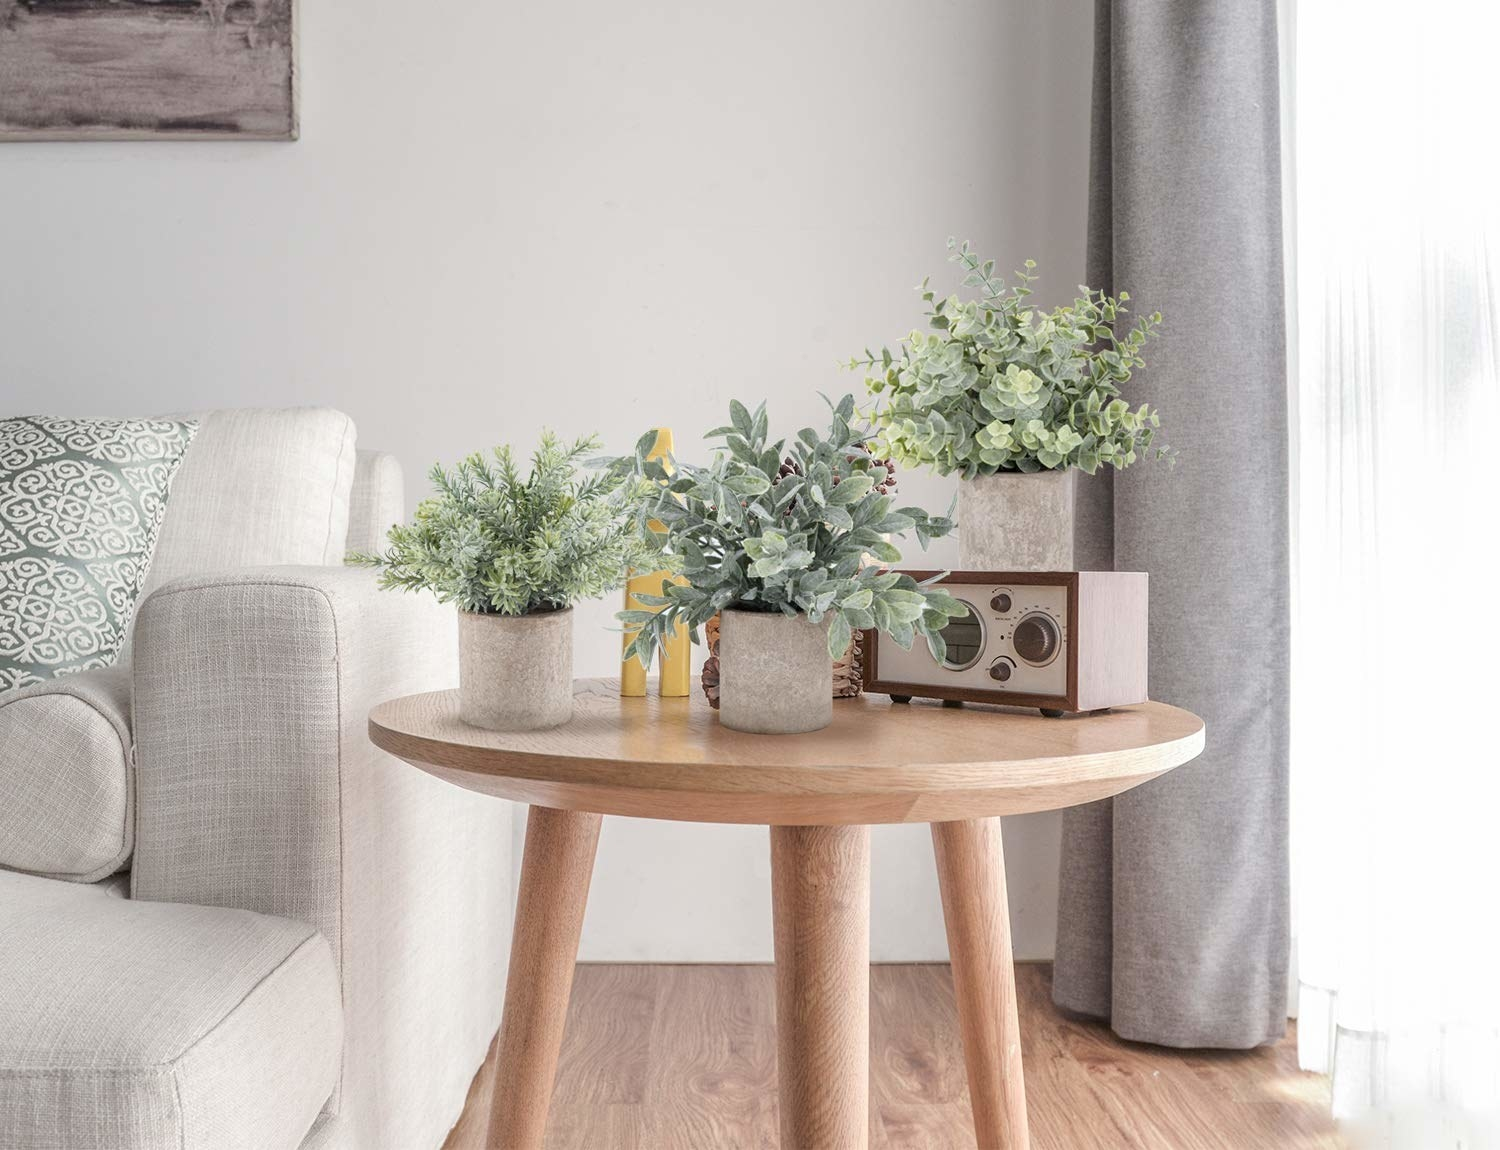 the three fake plants with different leaves in a tan round pot on a side table